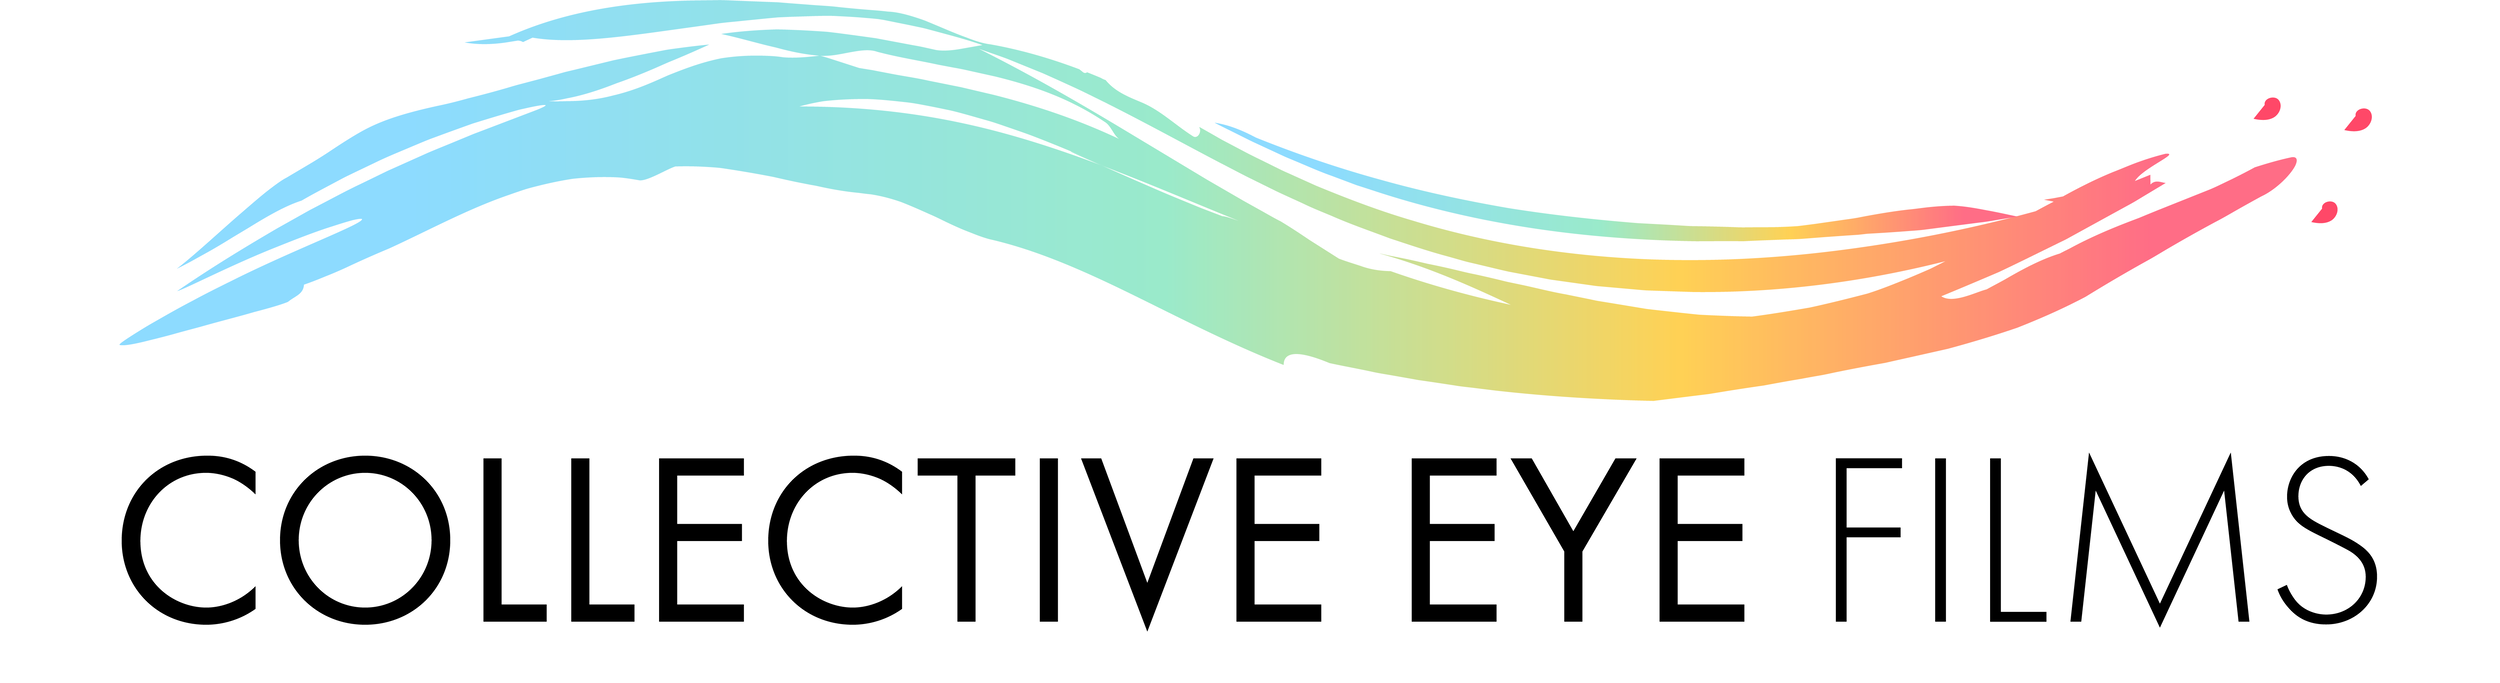 Collective Eye Films - Buyer.png